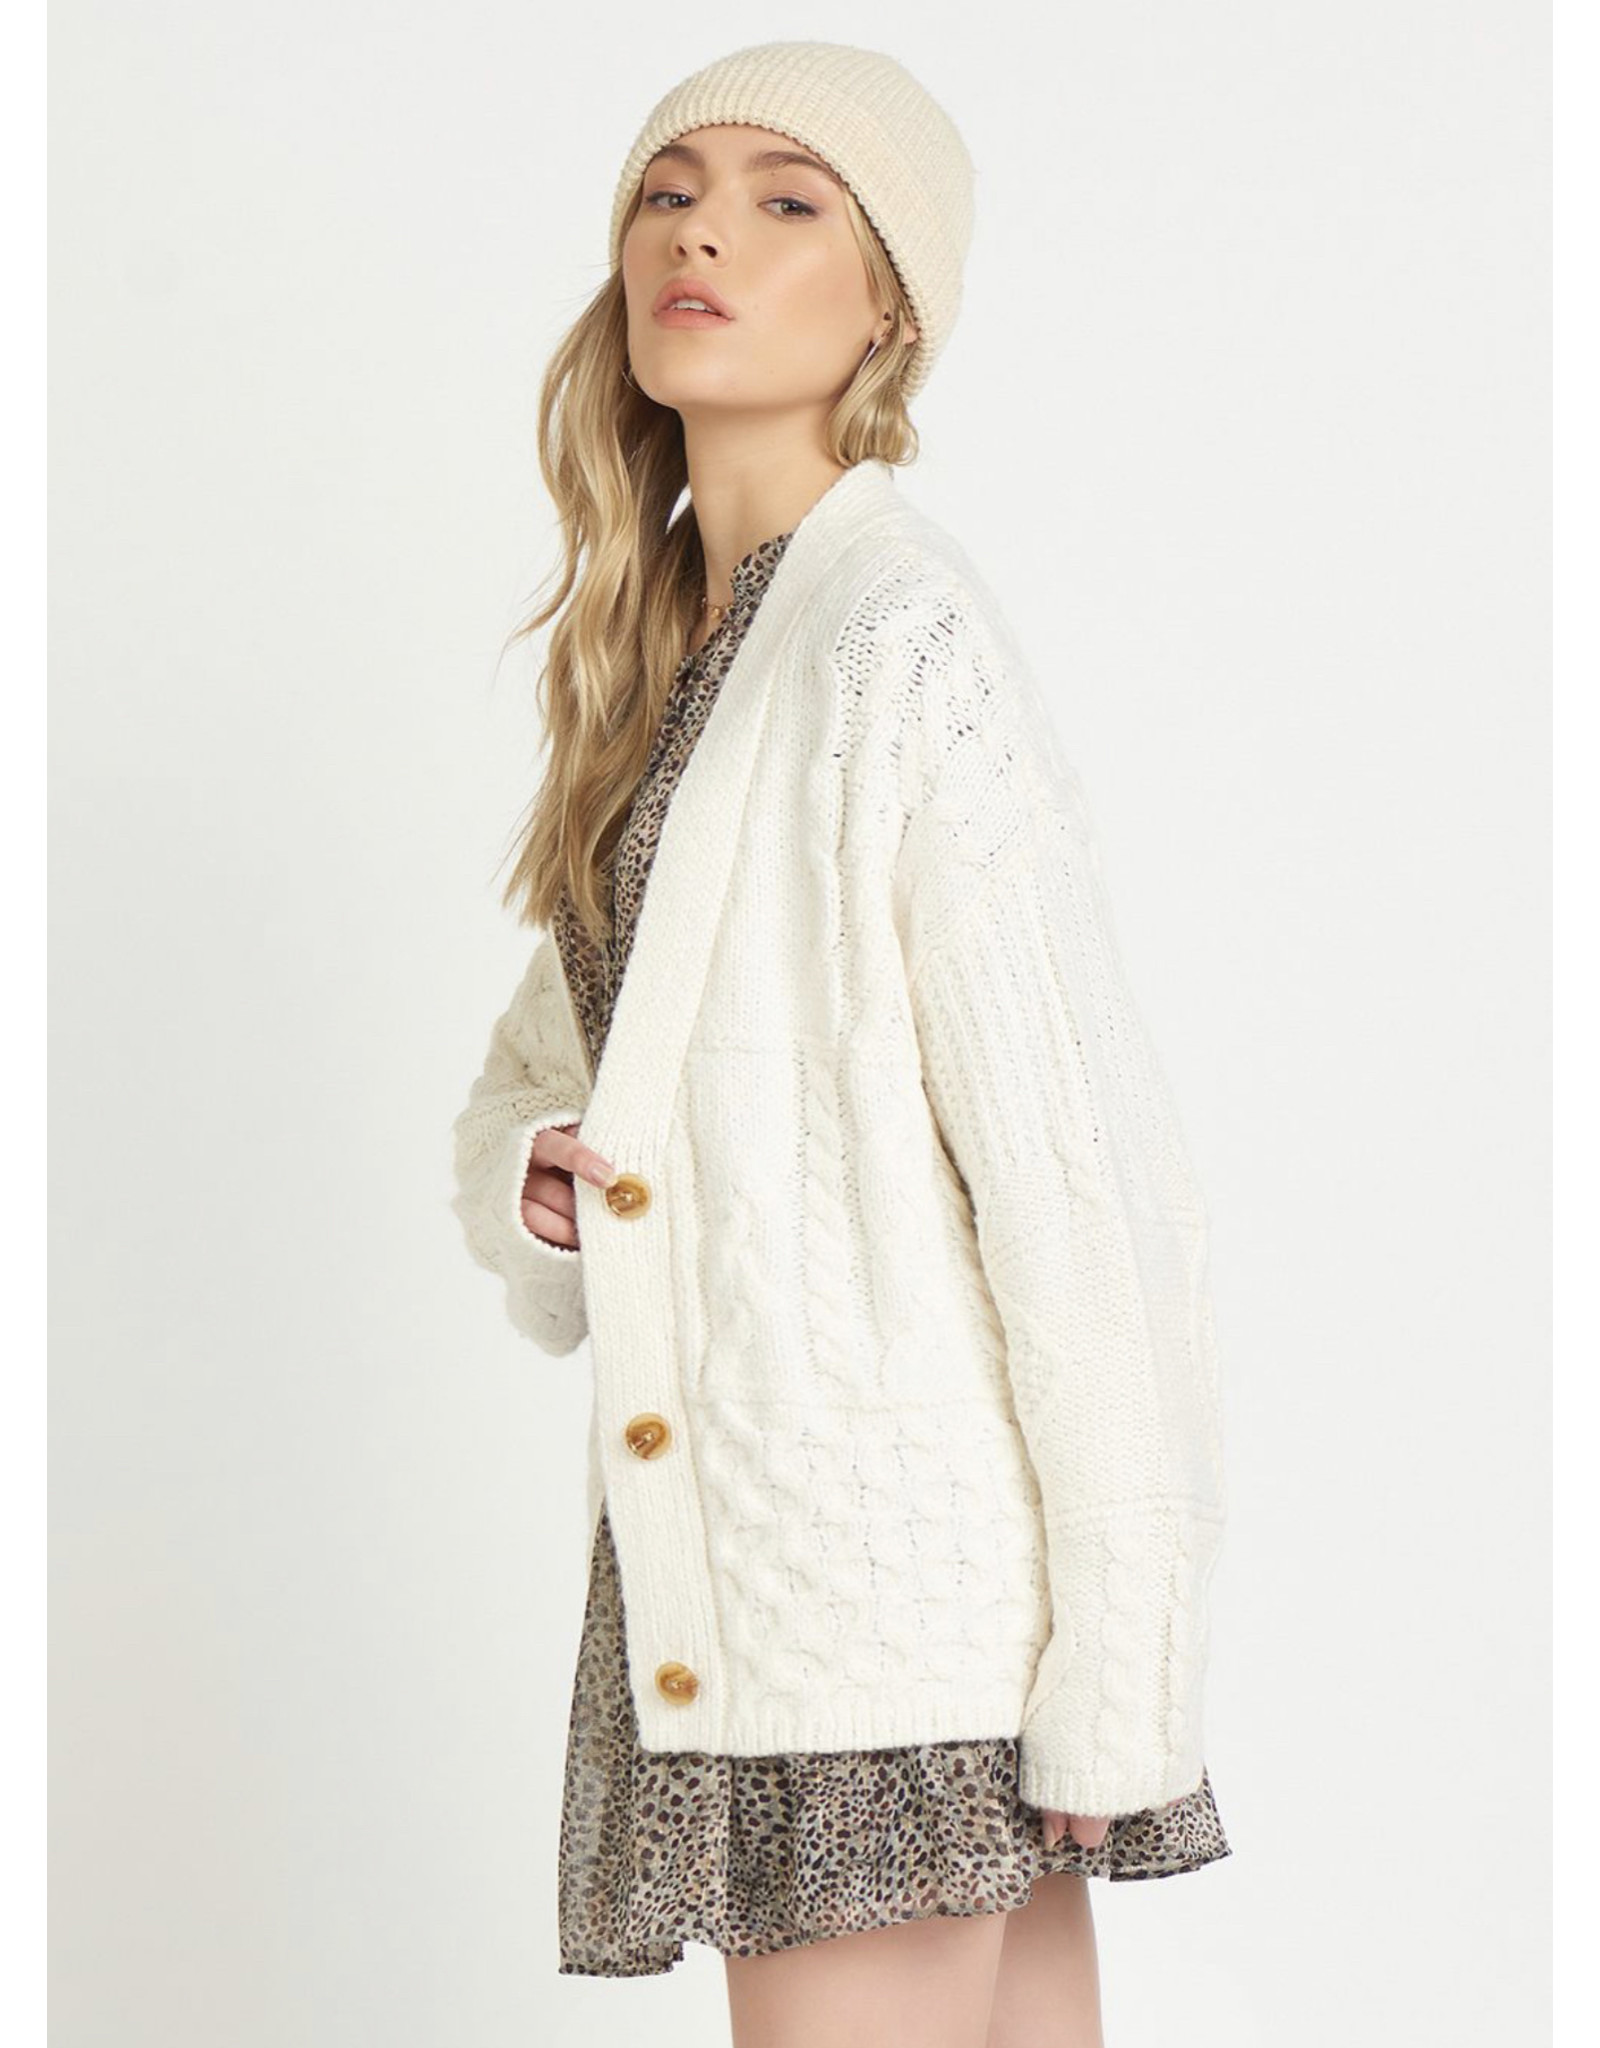 Oversized Cable Knit Cardigan, Cream